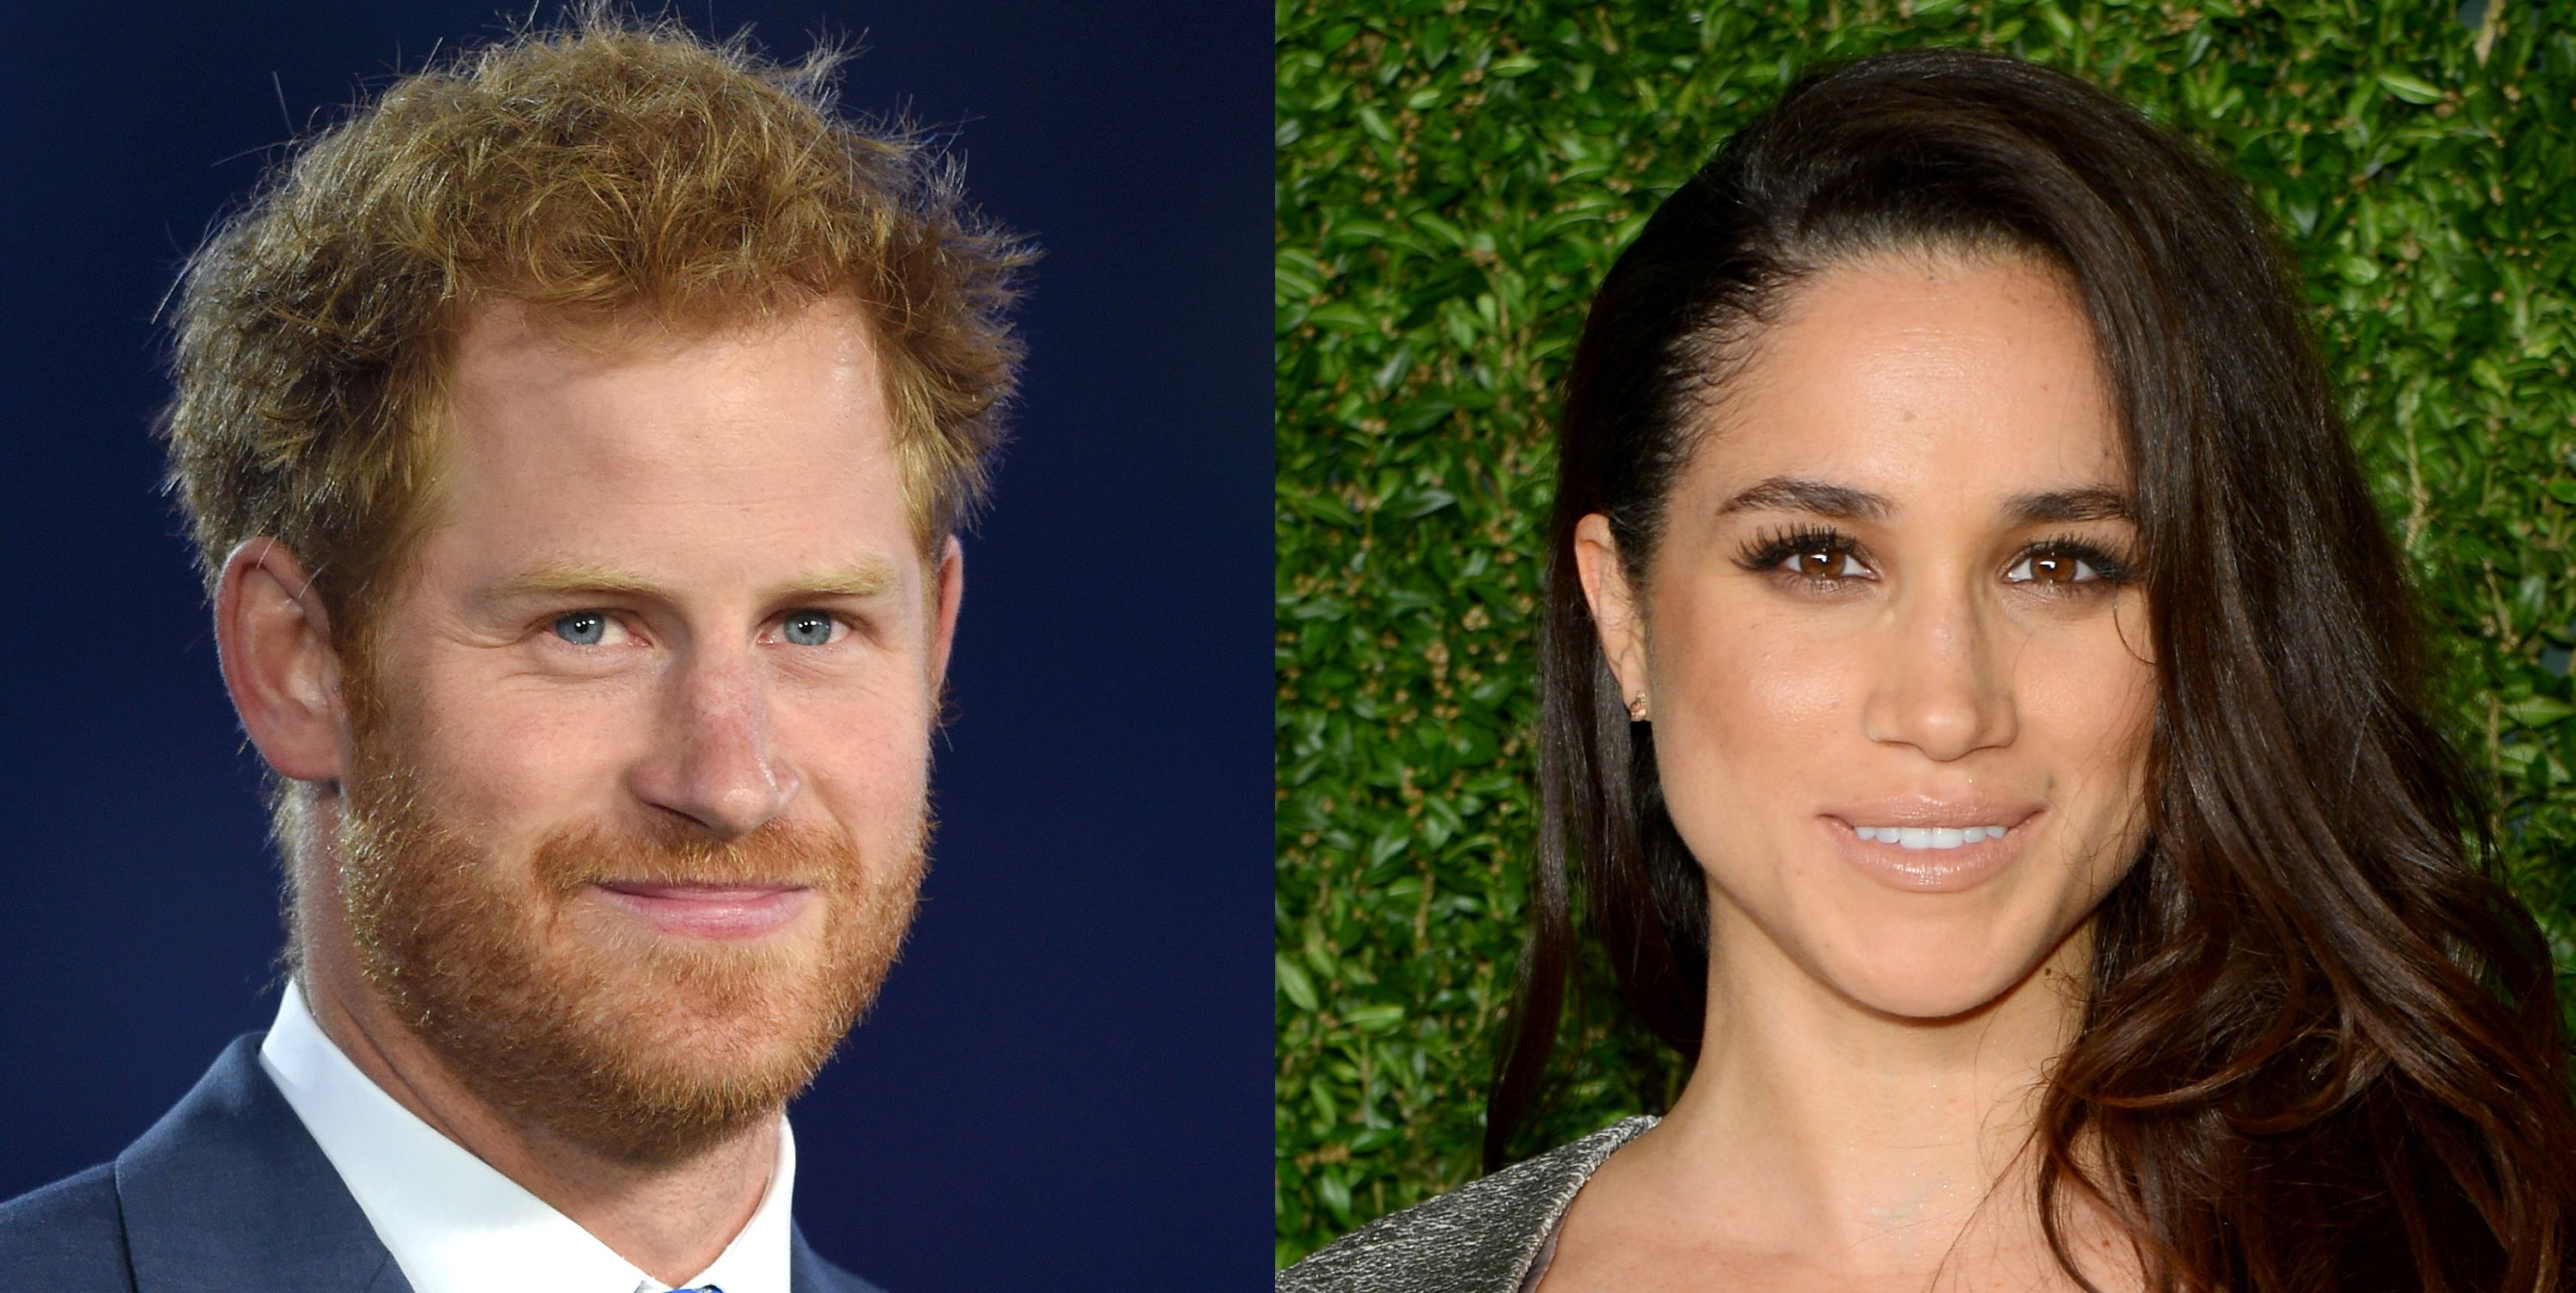 Prince Harry Reportedly Has a New American Girlfriend